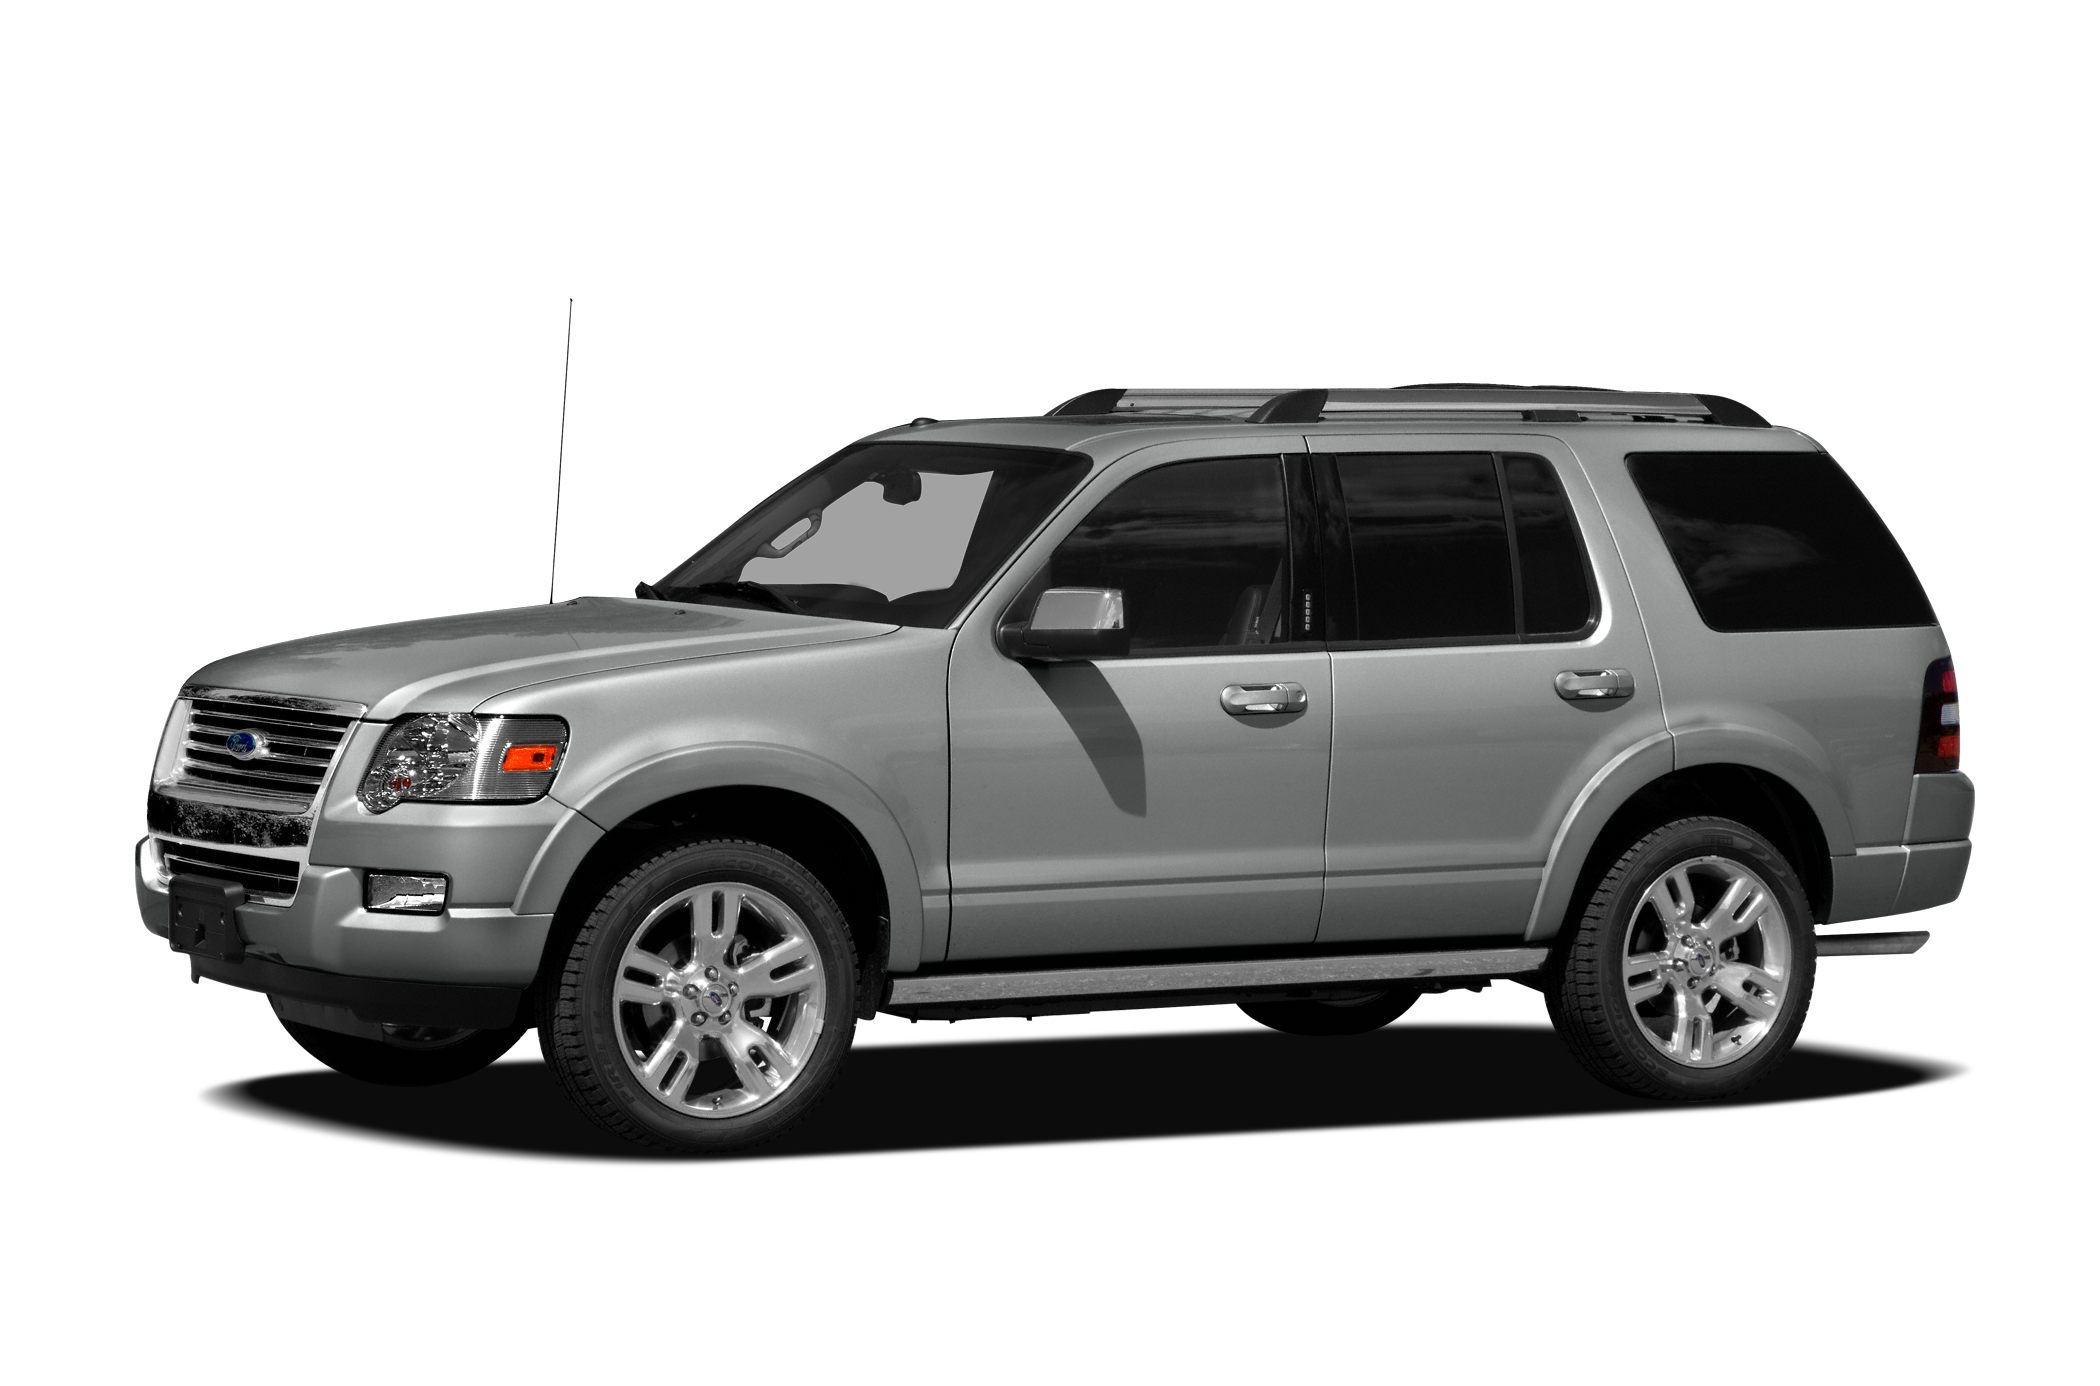 2009 Ford Explorer Eddie Bauer Keeps outside noise outside Noise-pollution-free zone inside the t